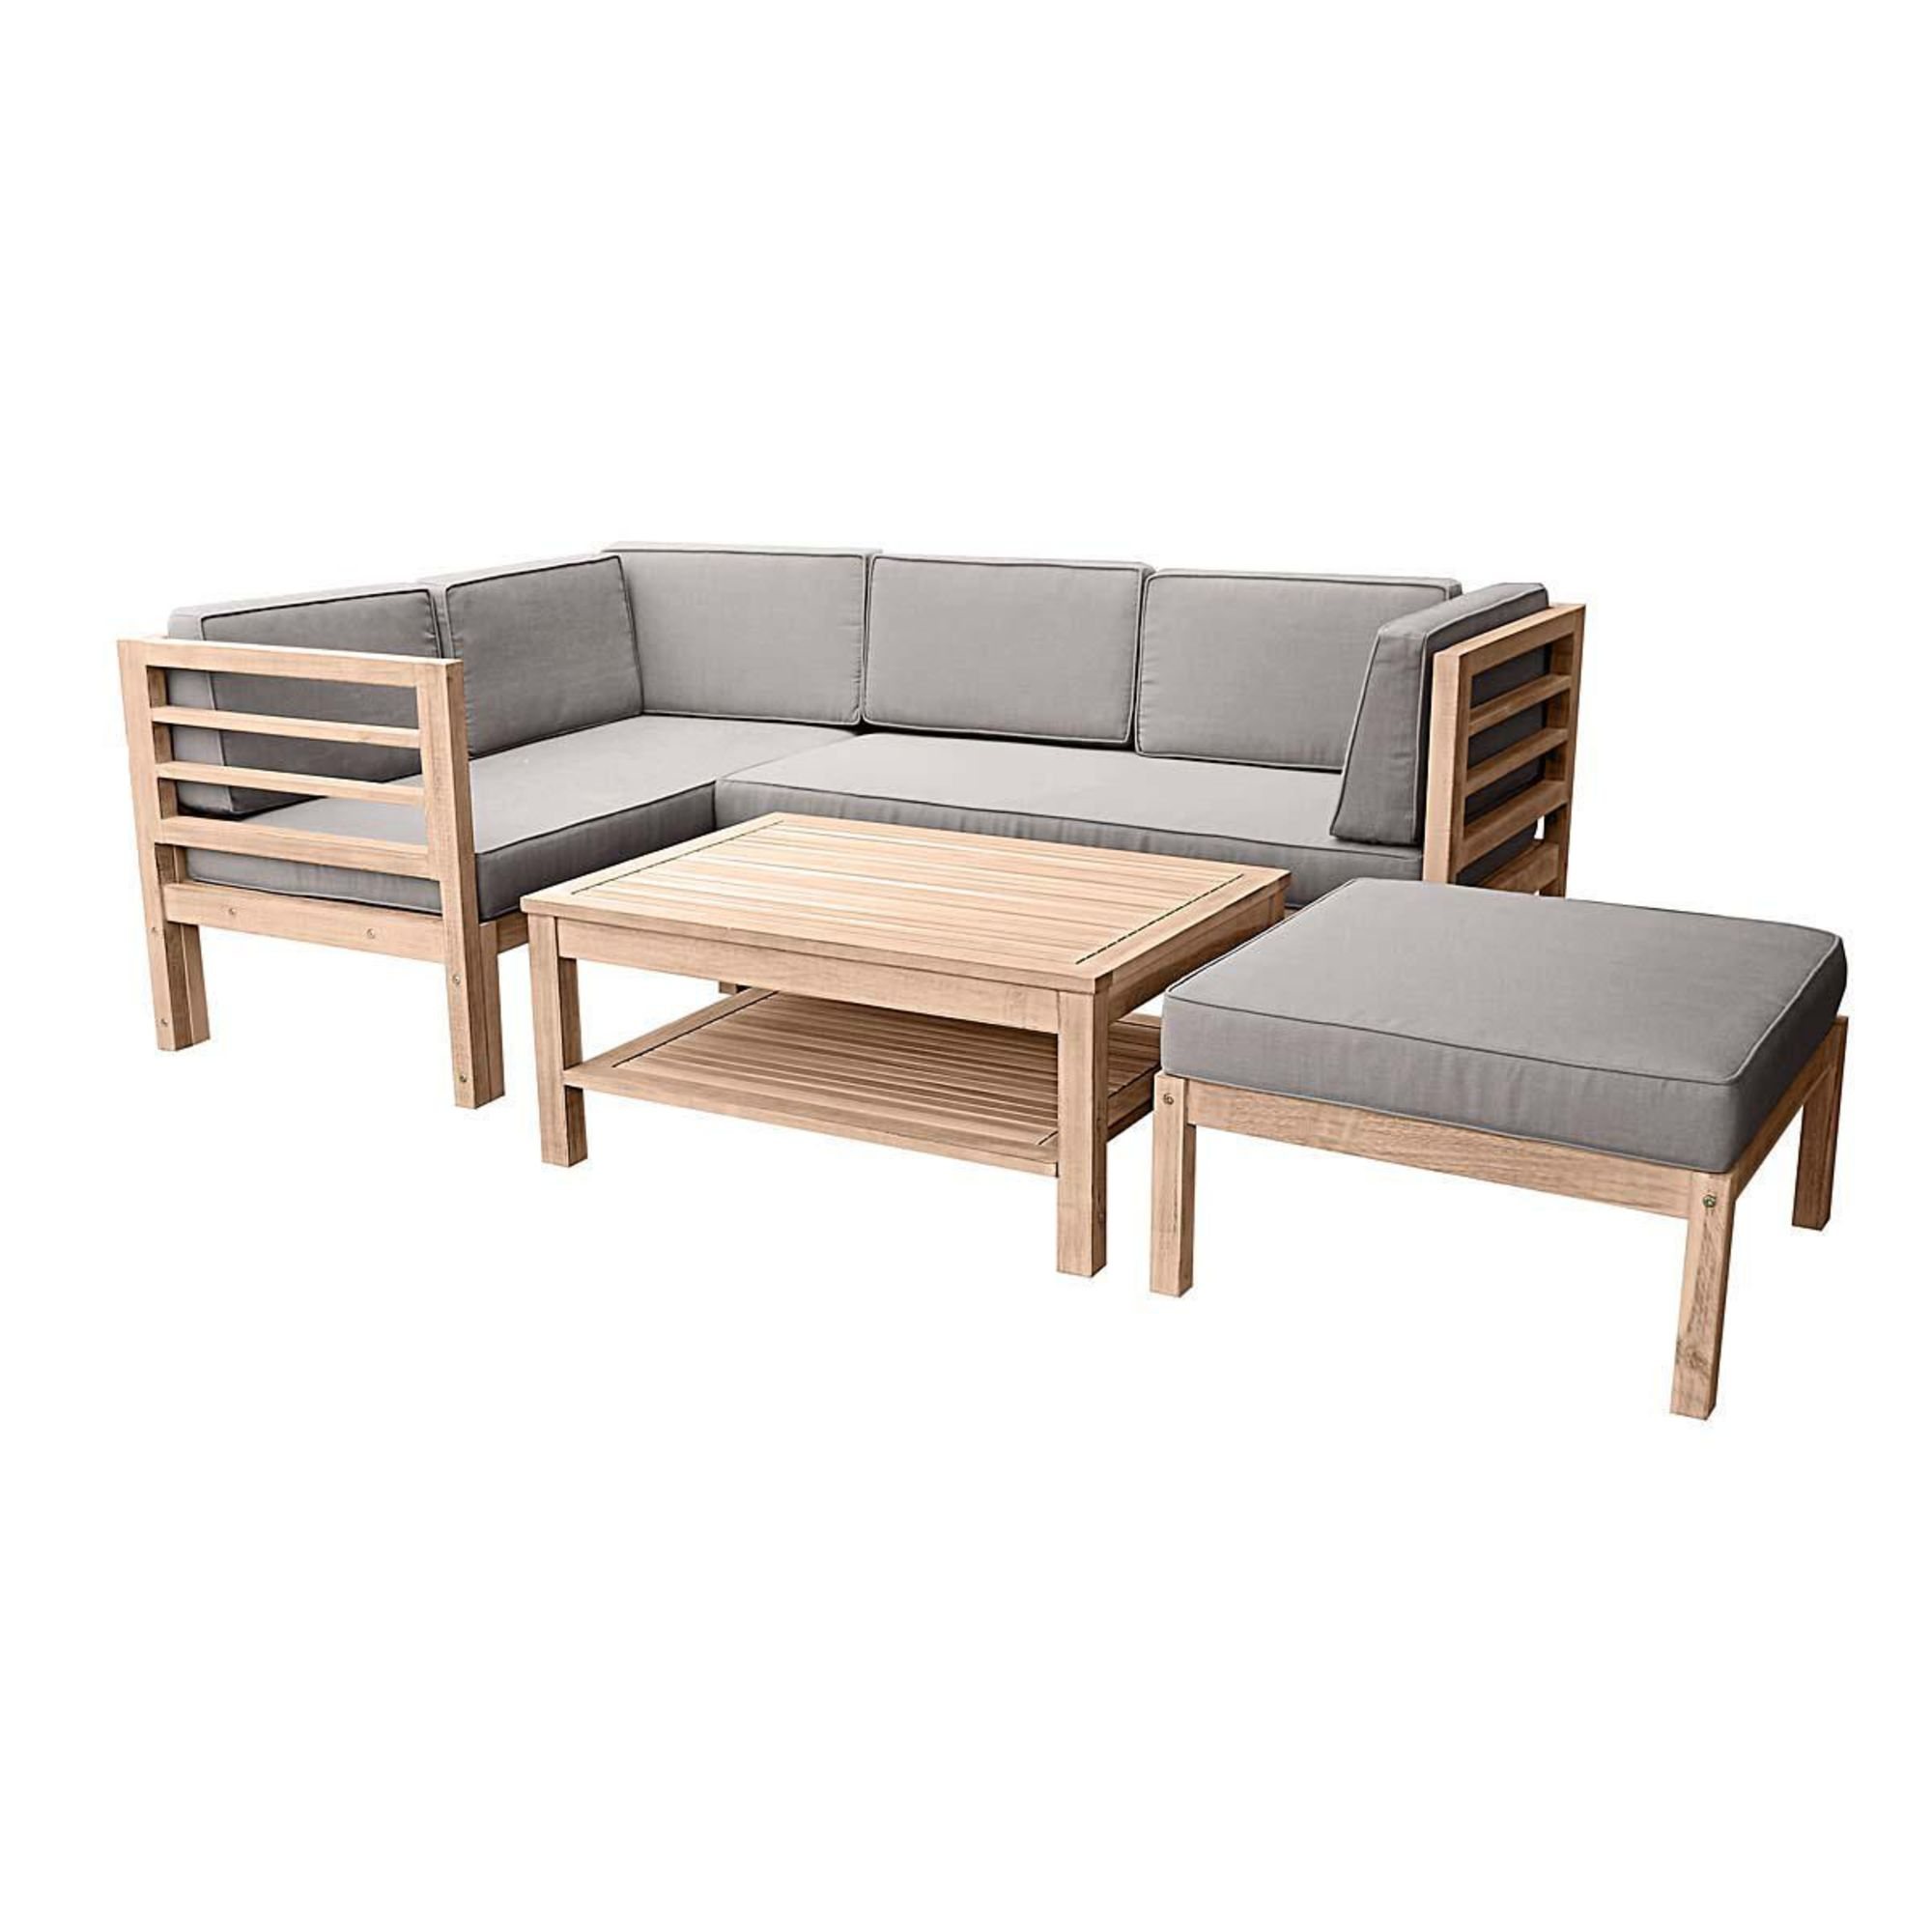 gartenm bel set holz grau. Black Bedroom Furniture Sets. Home Design Ideas